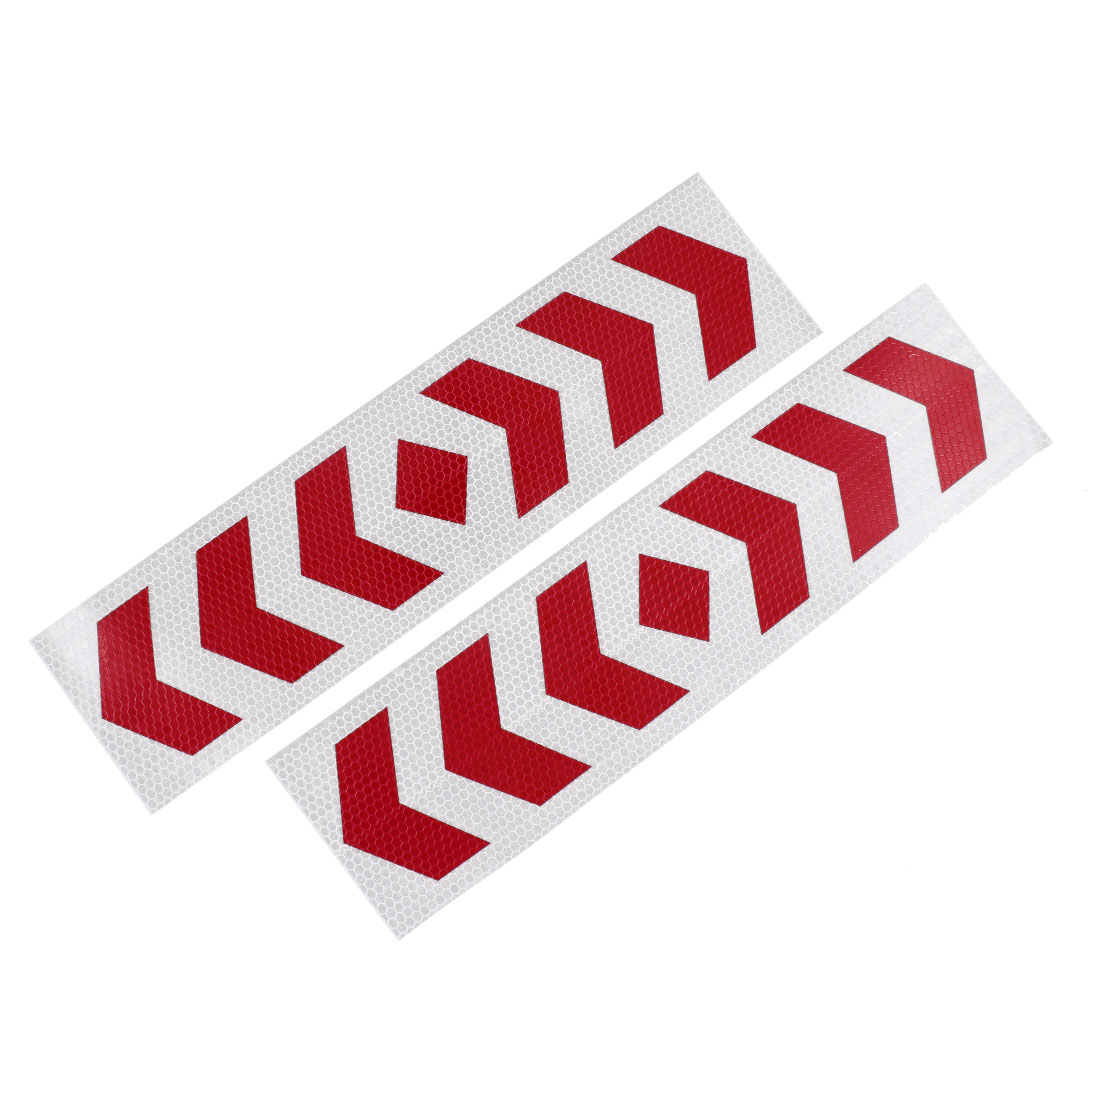 Car SUV Plastic Reflective Warning Sign Sticker Tape Red White 2 Pcs